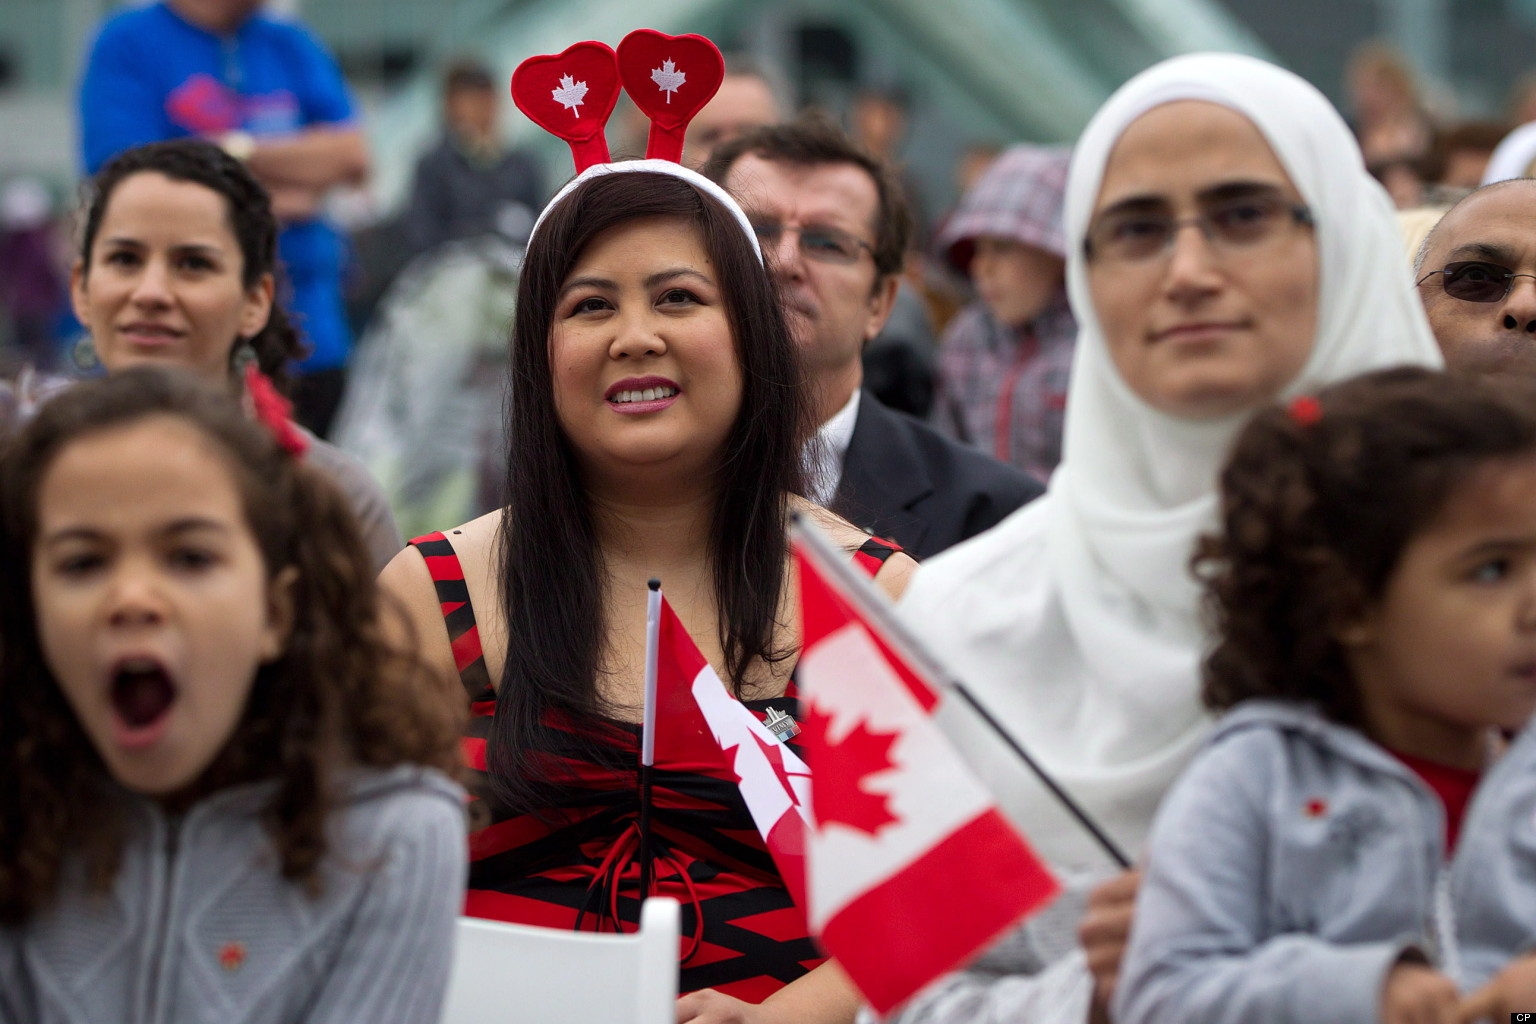 canadian immigration Looking to move to canada find the top-ranked canadian immigration consultants and lawyers with our in-depth reviews read honest reviews, tips and guides.